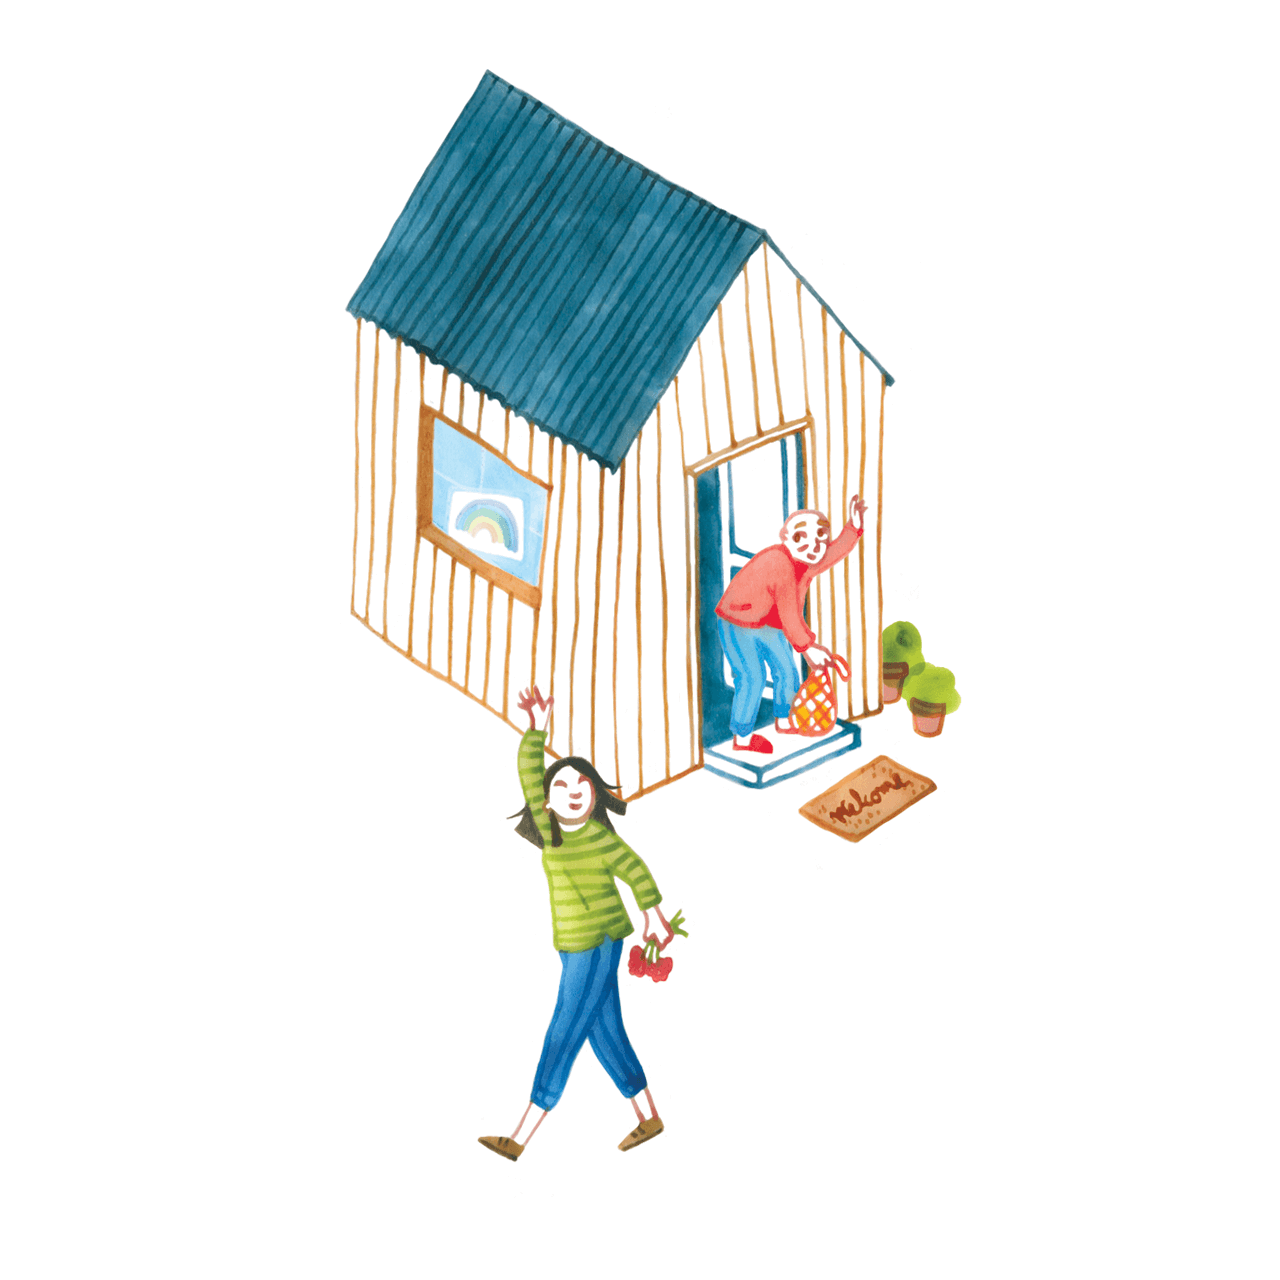 Editorial illustration of a woman helping an elderly neighbour